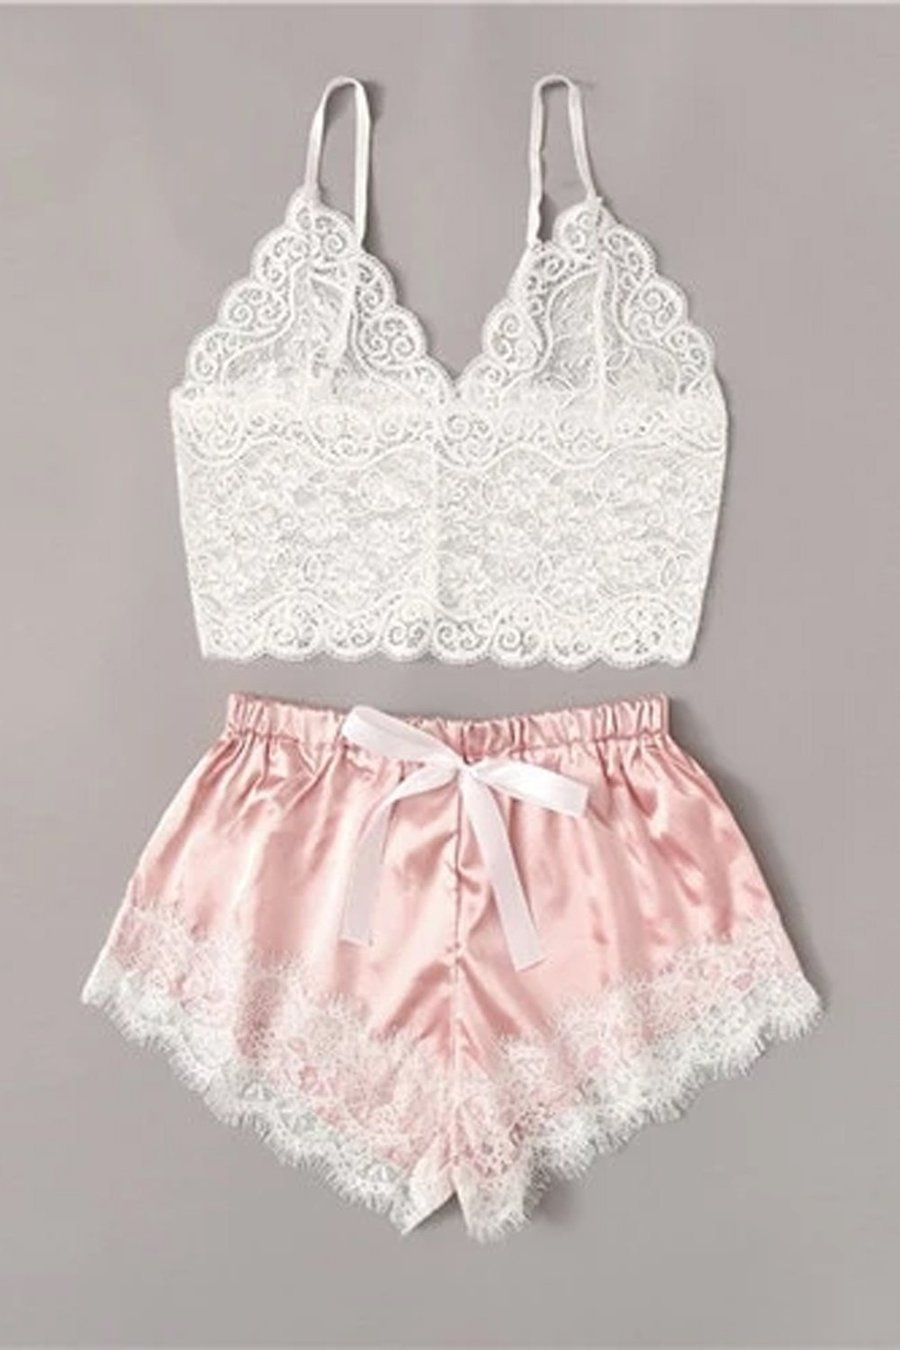 Felicity Floral Lace Cami Top With Satin Shorts Li